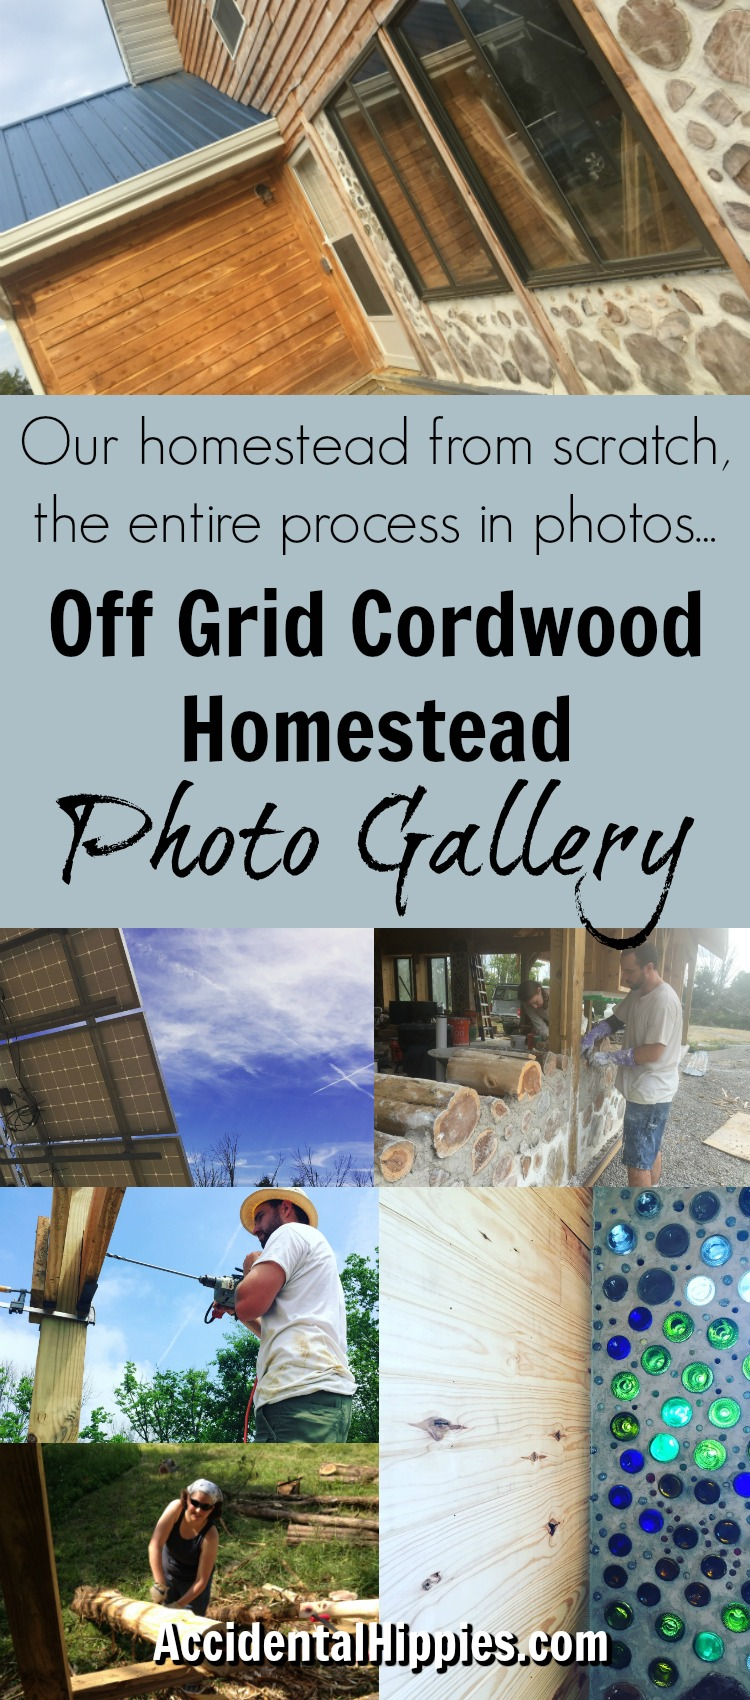 Photo gallery showcasing the complete process of building a cordwood home from the very beginning